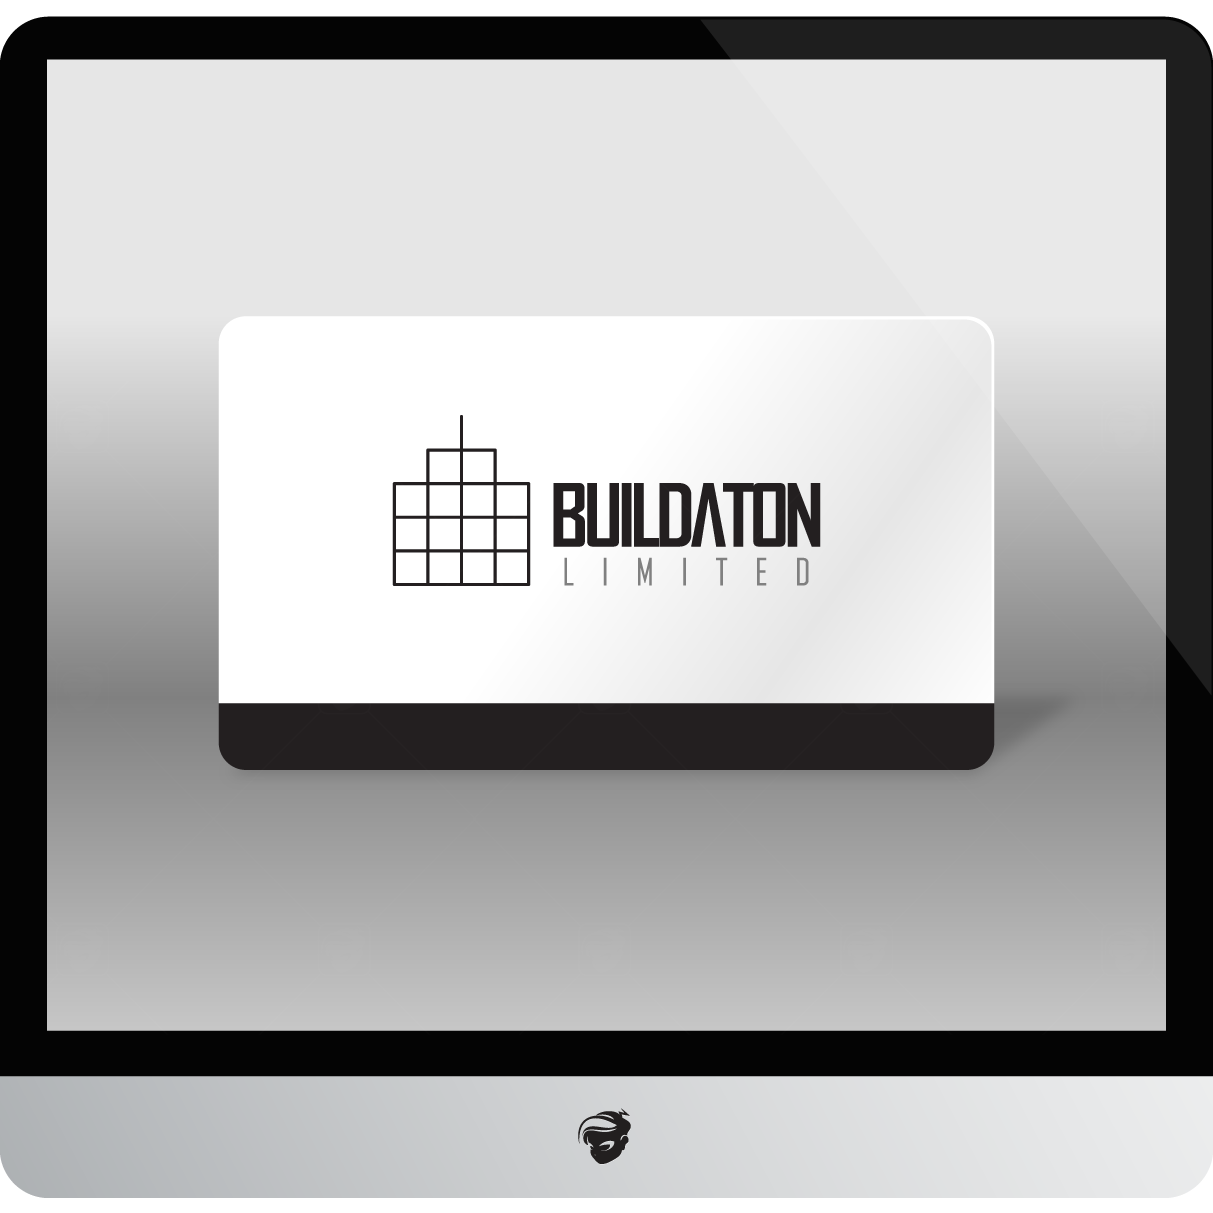 Logo Design by zesthar - Entry No. 89 in the Logo Design Contest Artistic Logo Design for Buildaton Limited.